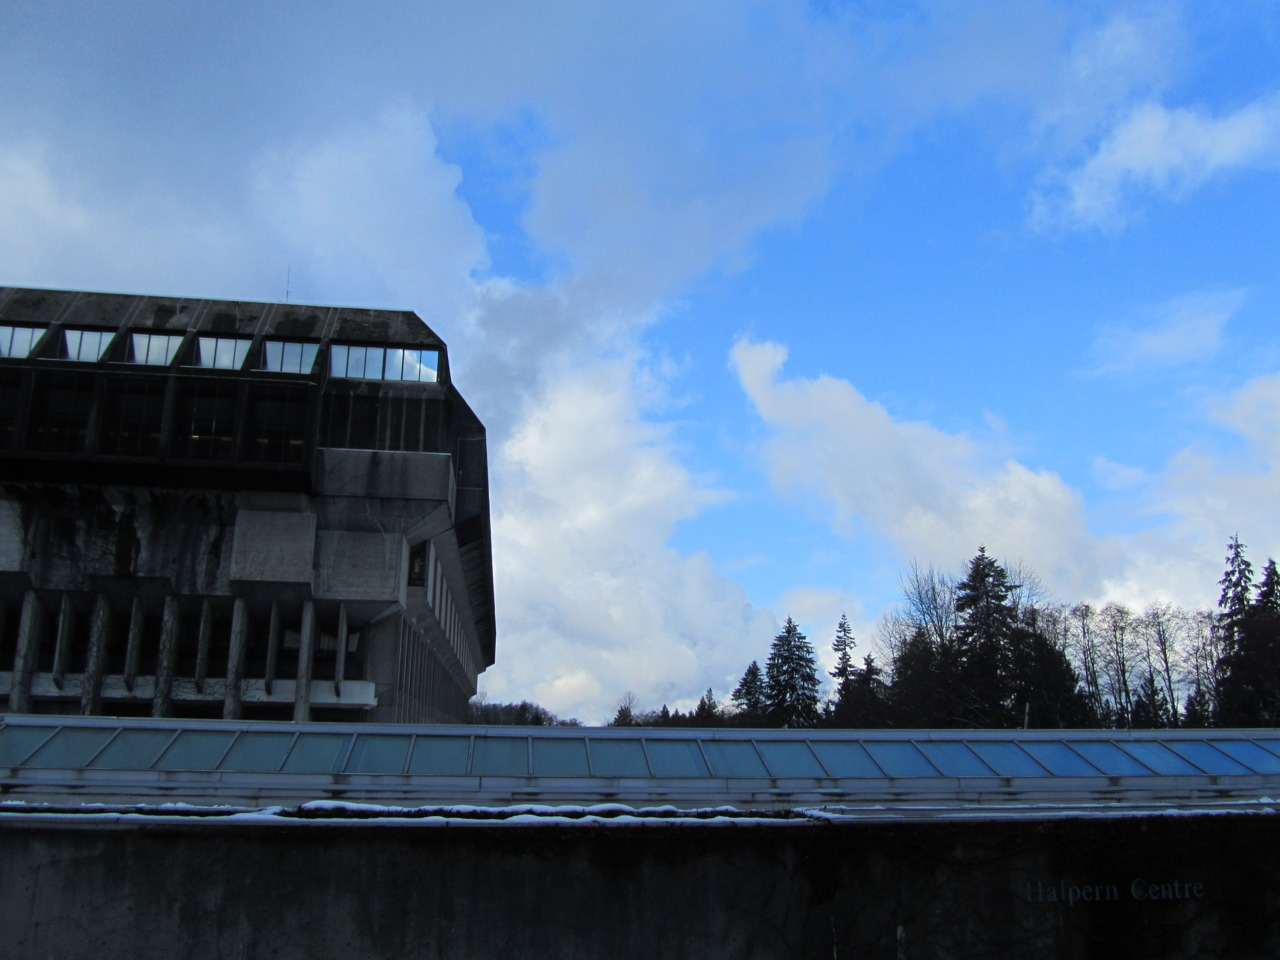 What a beautiful day out there in the world. Up at SFU Burnaby campus the sun peeks through the clouds.